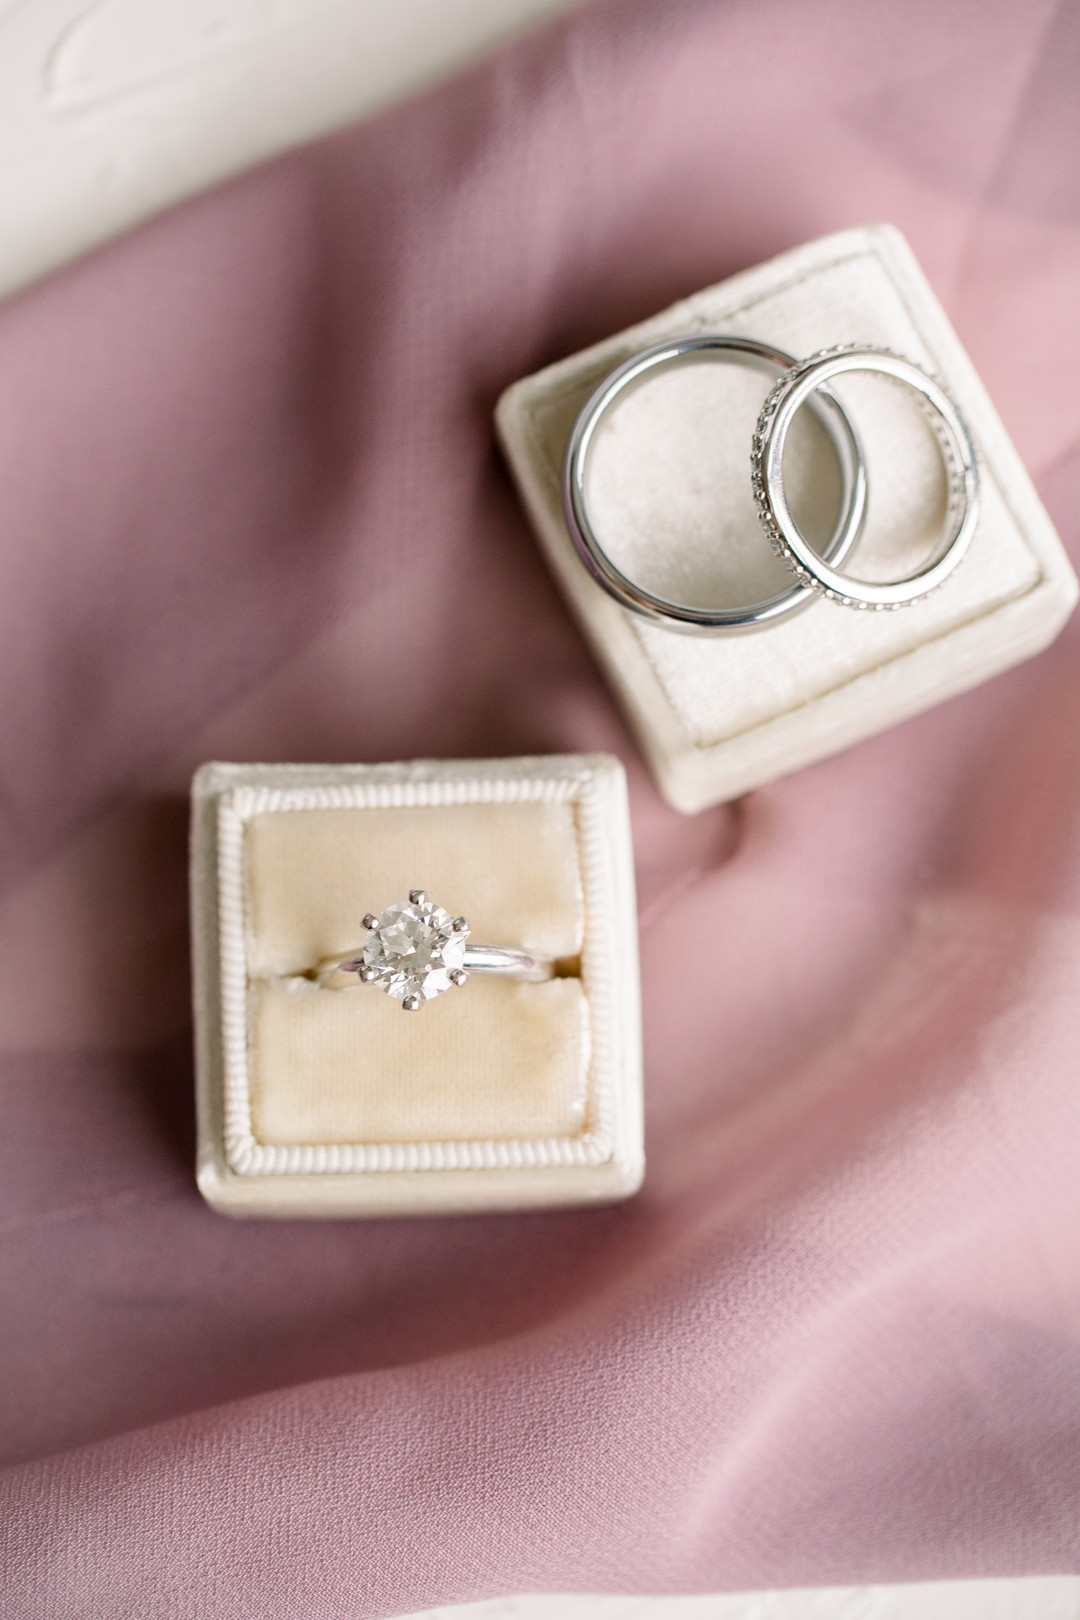 Wedding and engagement rings: Spring wedding inspiration captured by Nicole Morisco Photography. Find more spring wedding ideas at CHItheeWED.com!